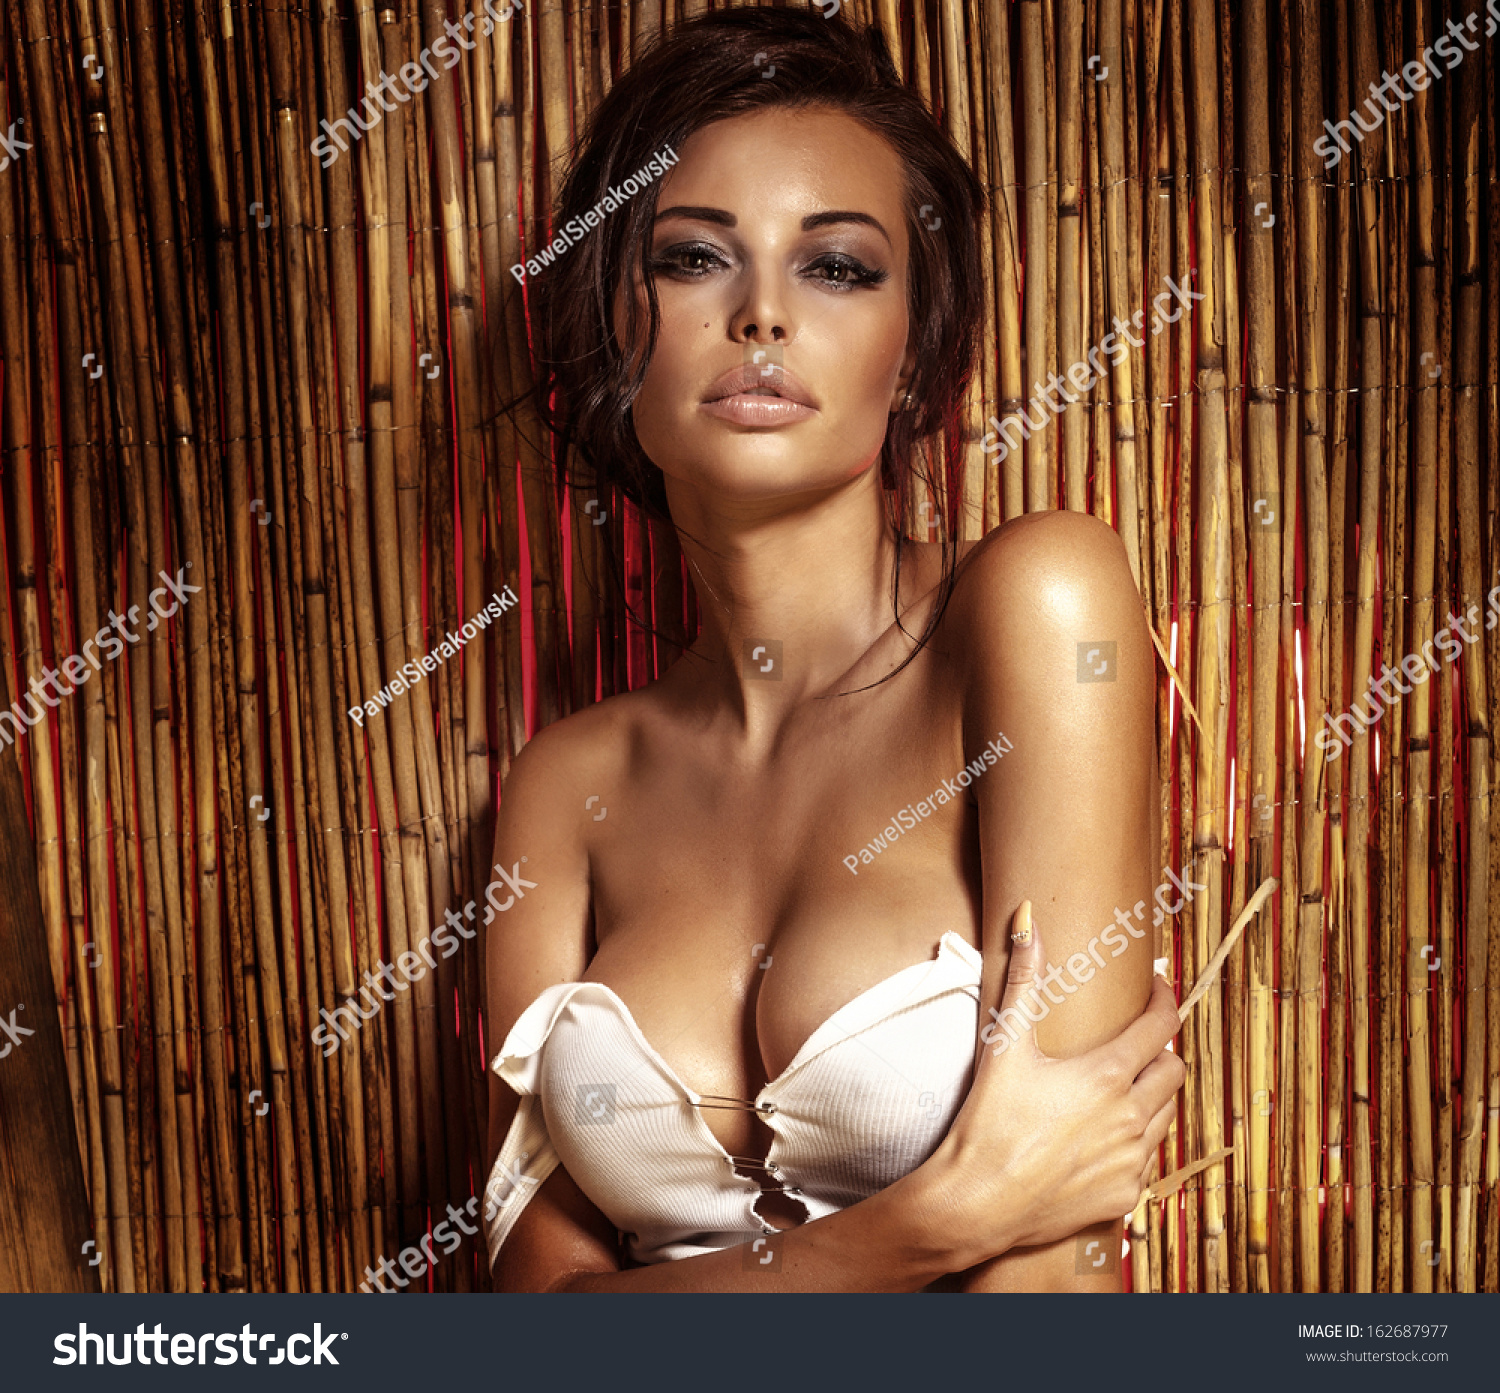 klein-nude-beautyful-naked-breast-galley-forced-nude